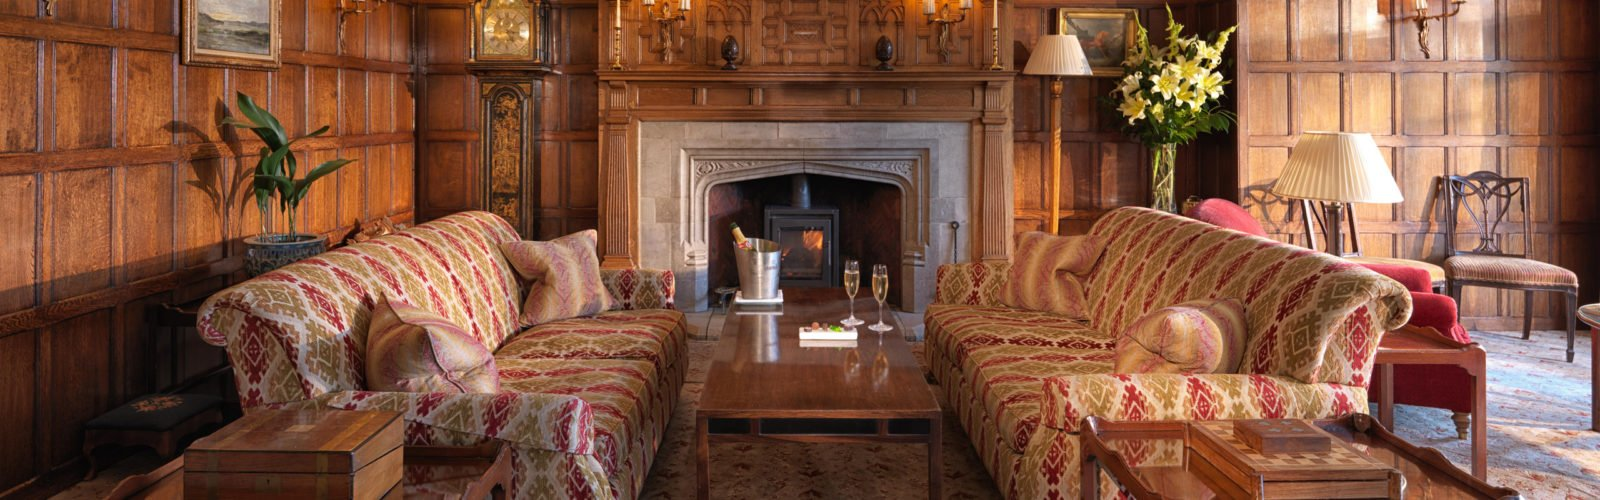 gidleigh-park-drawing-room